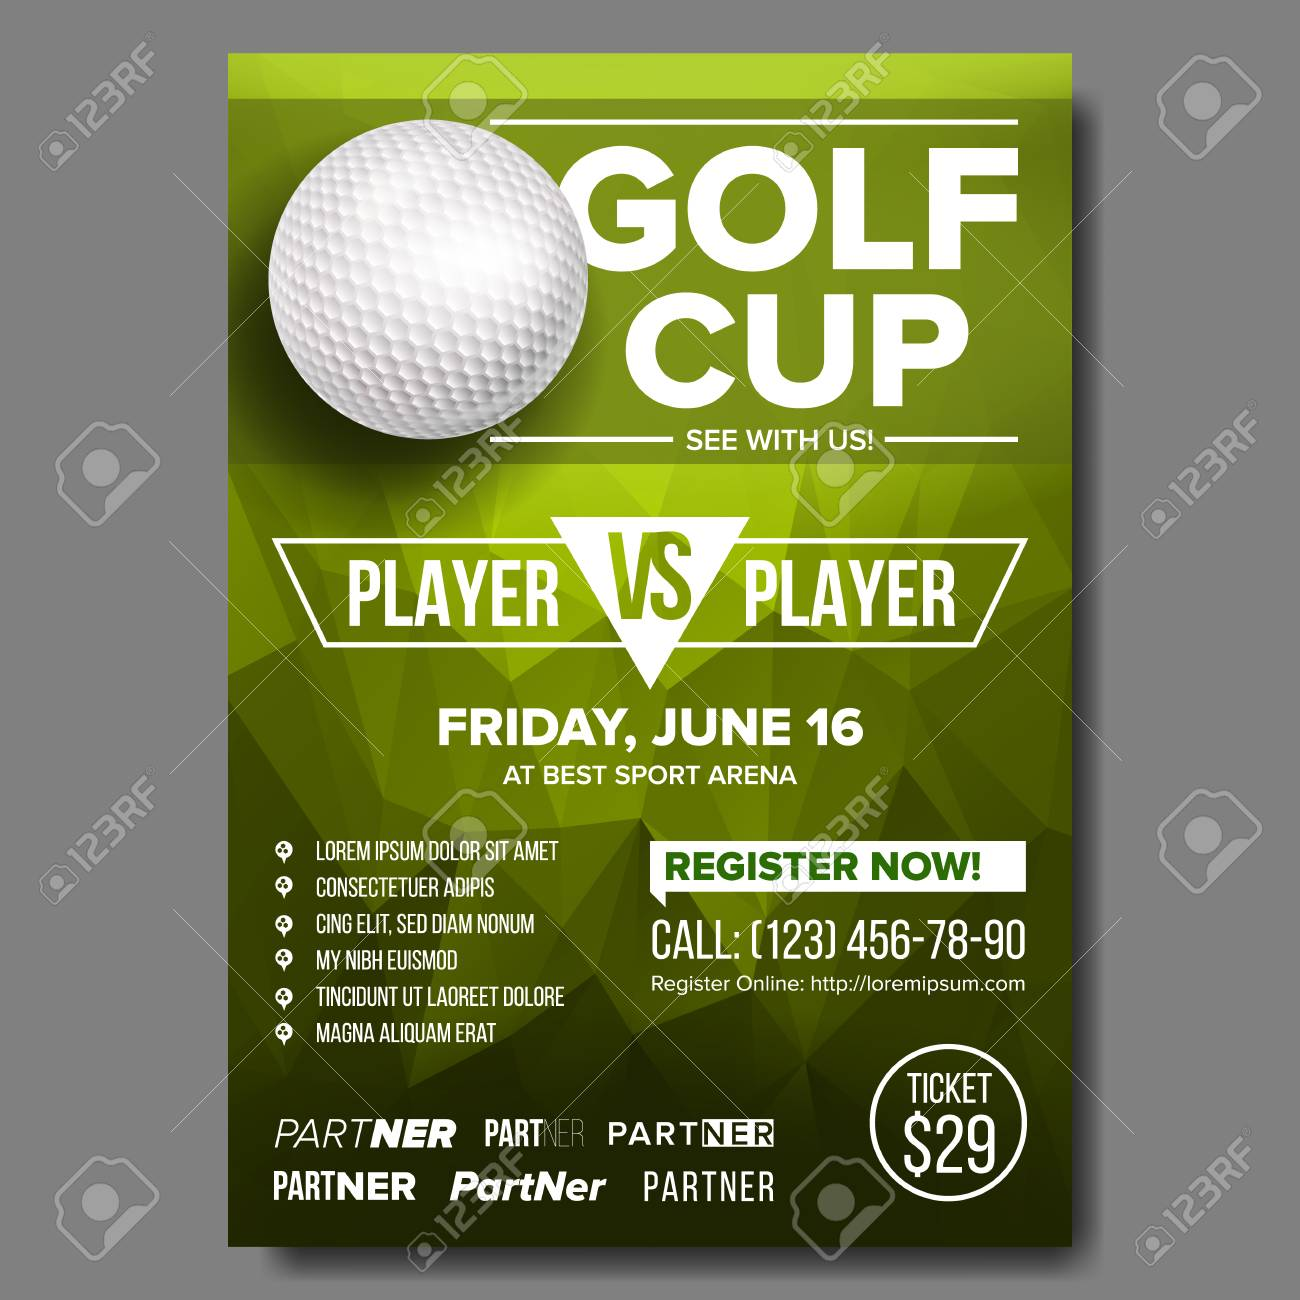 Golf Poster Vector Design For Sport Bar Promotion Golf Ball Royalty Free Cliparts Vectors And Stock Illustration Image 114957220